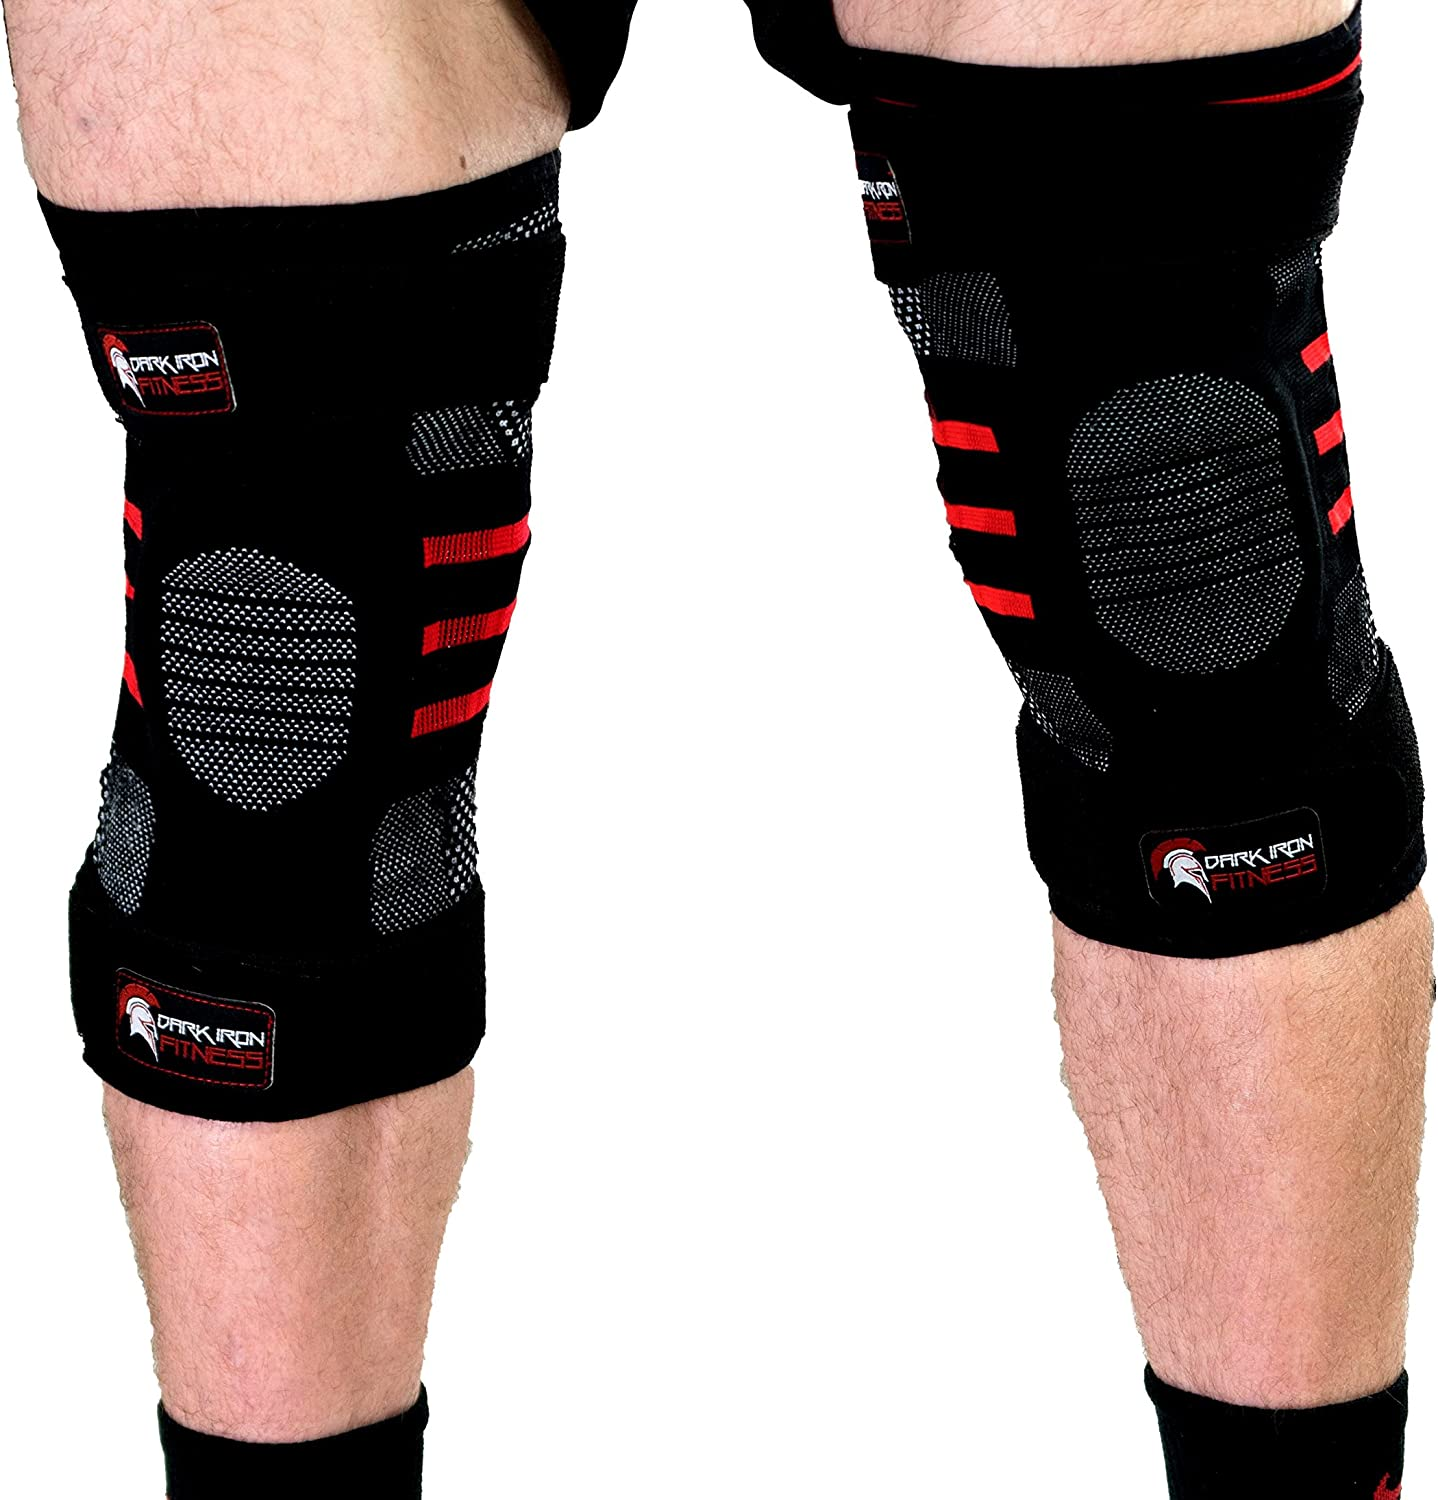 Weightlifting Knee Sleeves for Crossfit Powerlifting and Weight Training   1 Pair of Compression Sleeve Wraps for Knees with Power Lifting Padded Support Stabilizer Brace to Squat Better